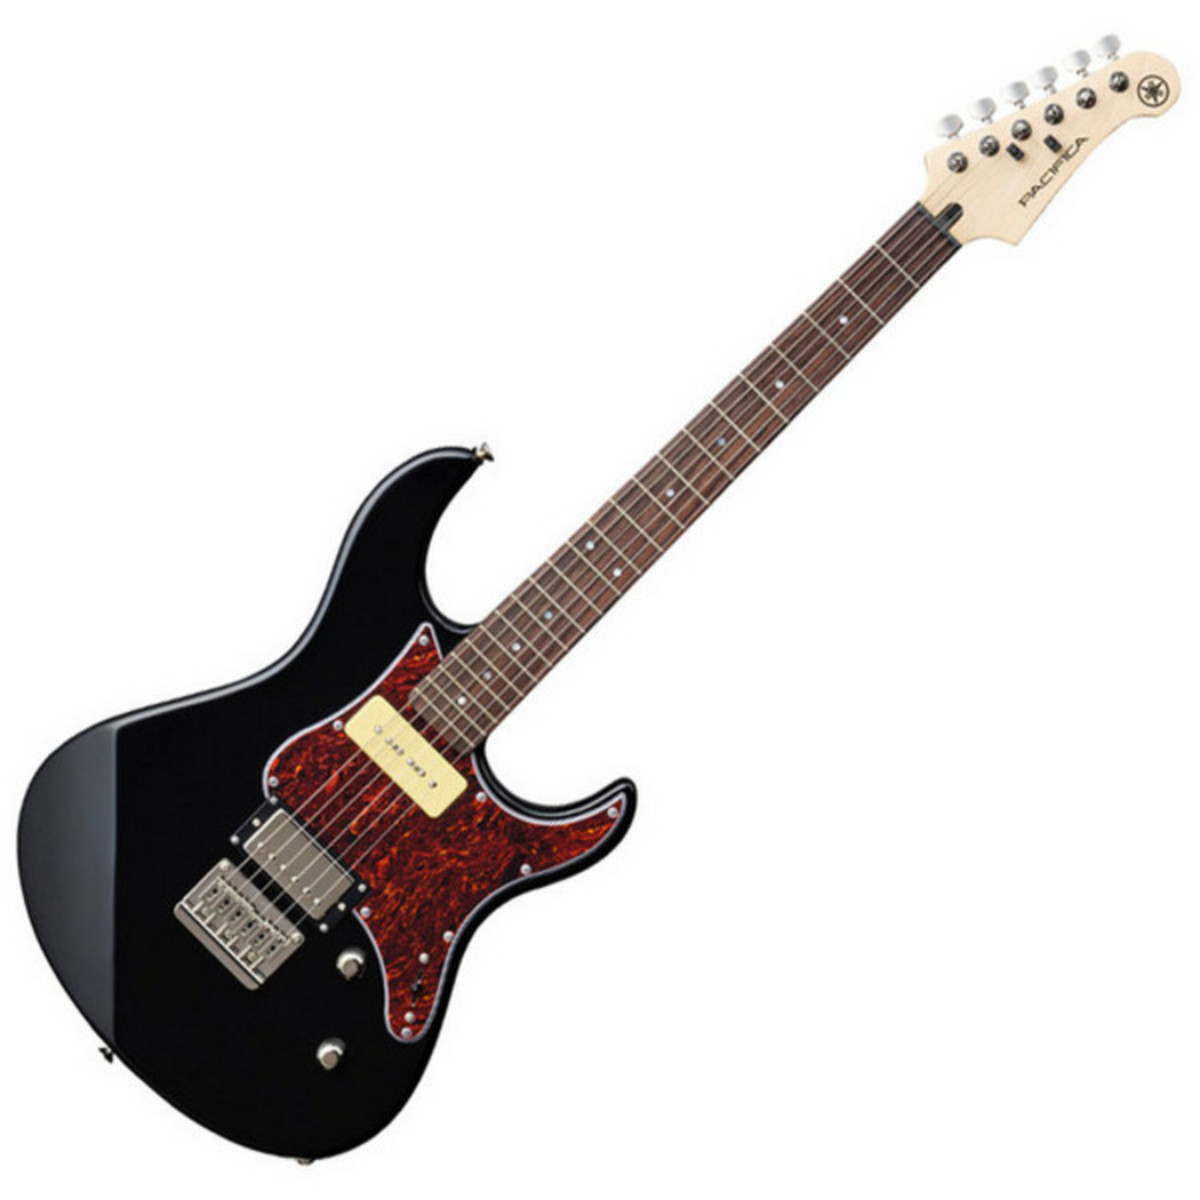 yamaha pacifica 311h electric guitar black at. Black Bedroom Furniture Sets. Home Design Ideas